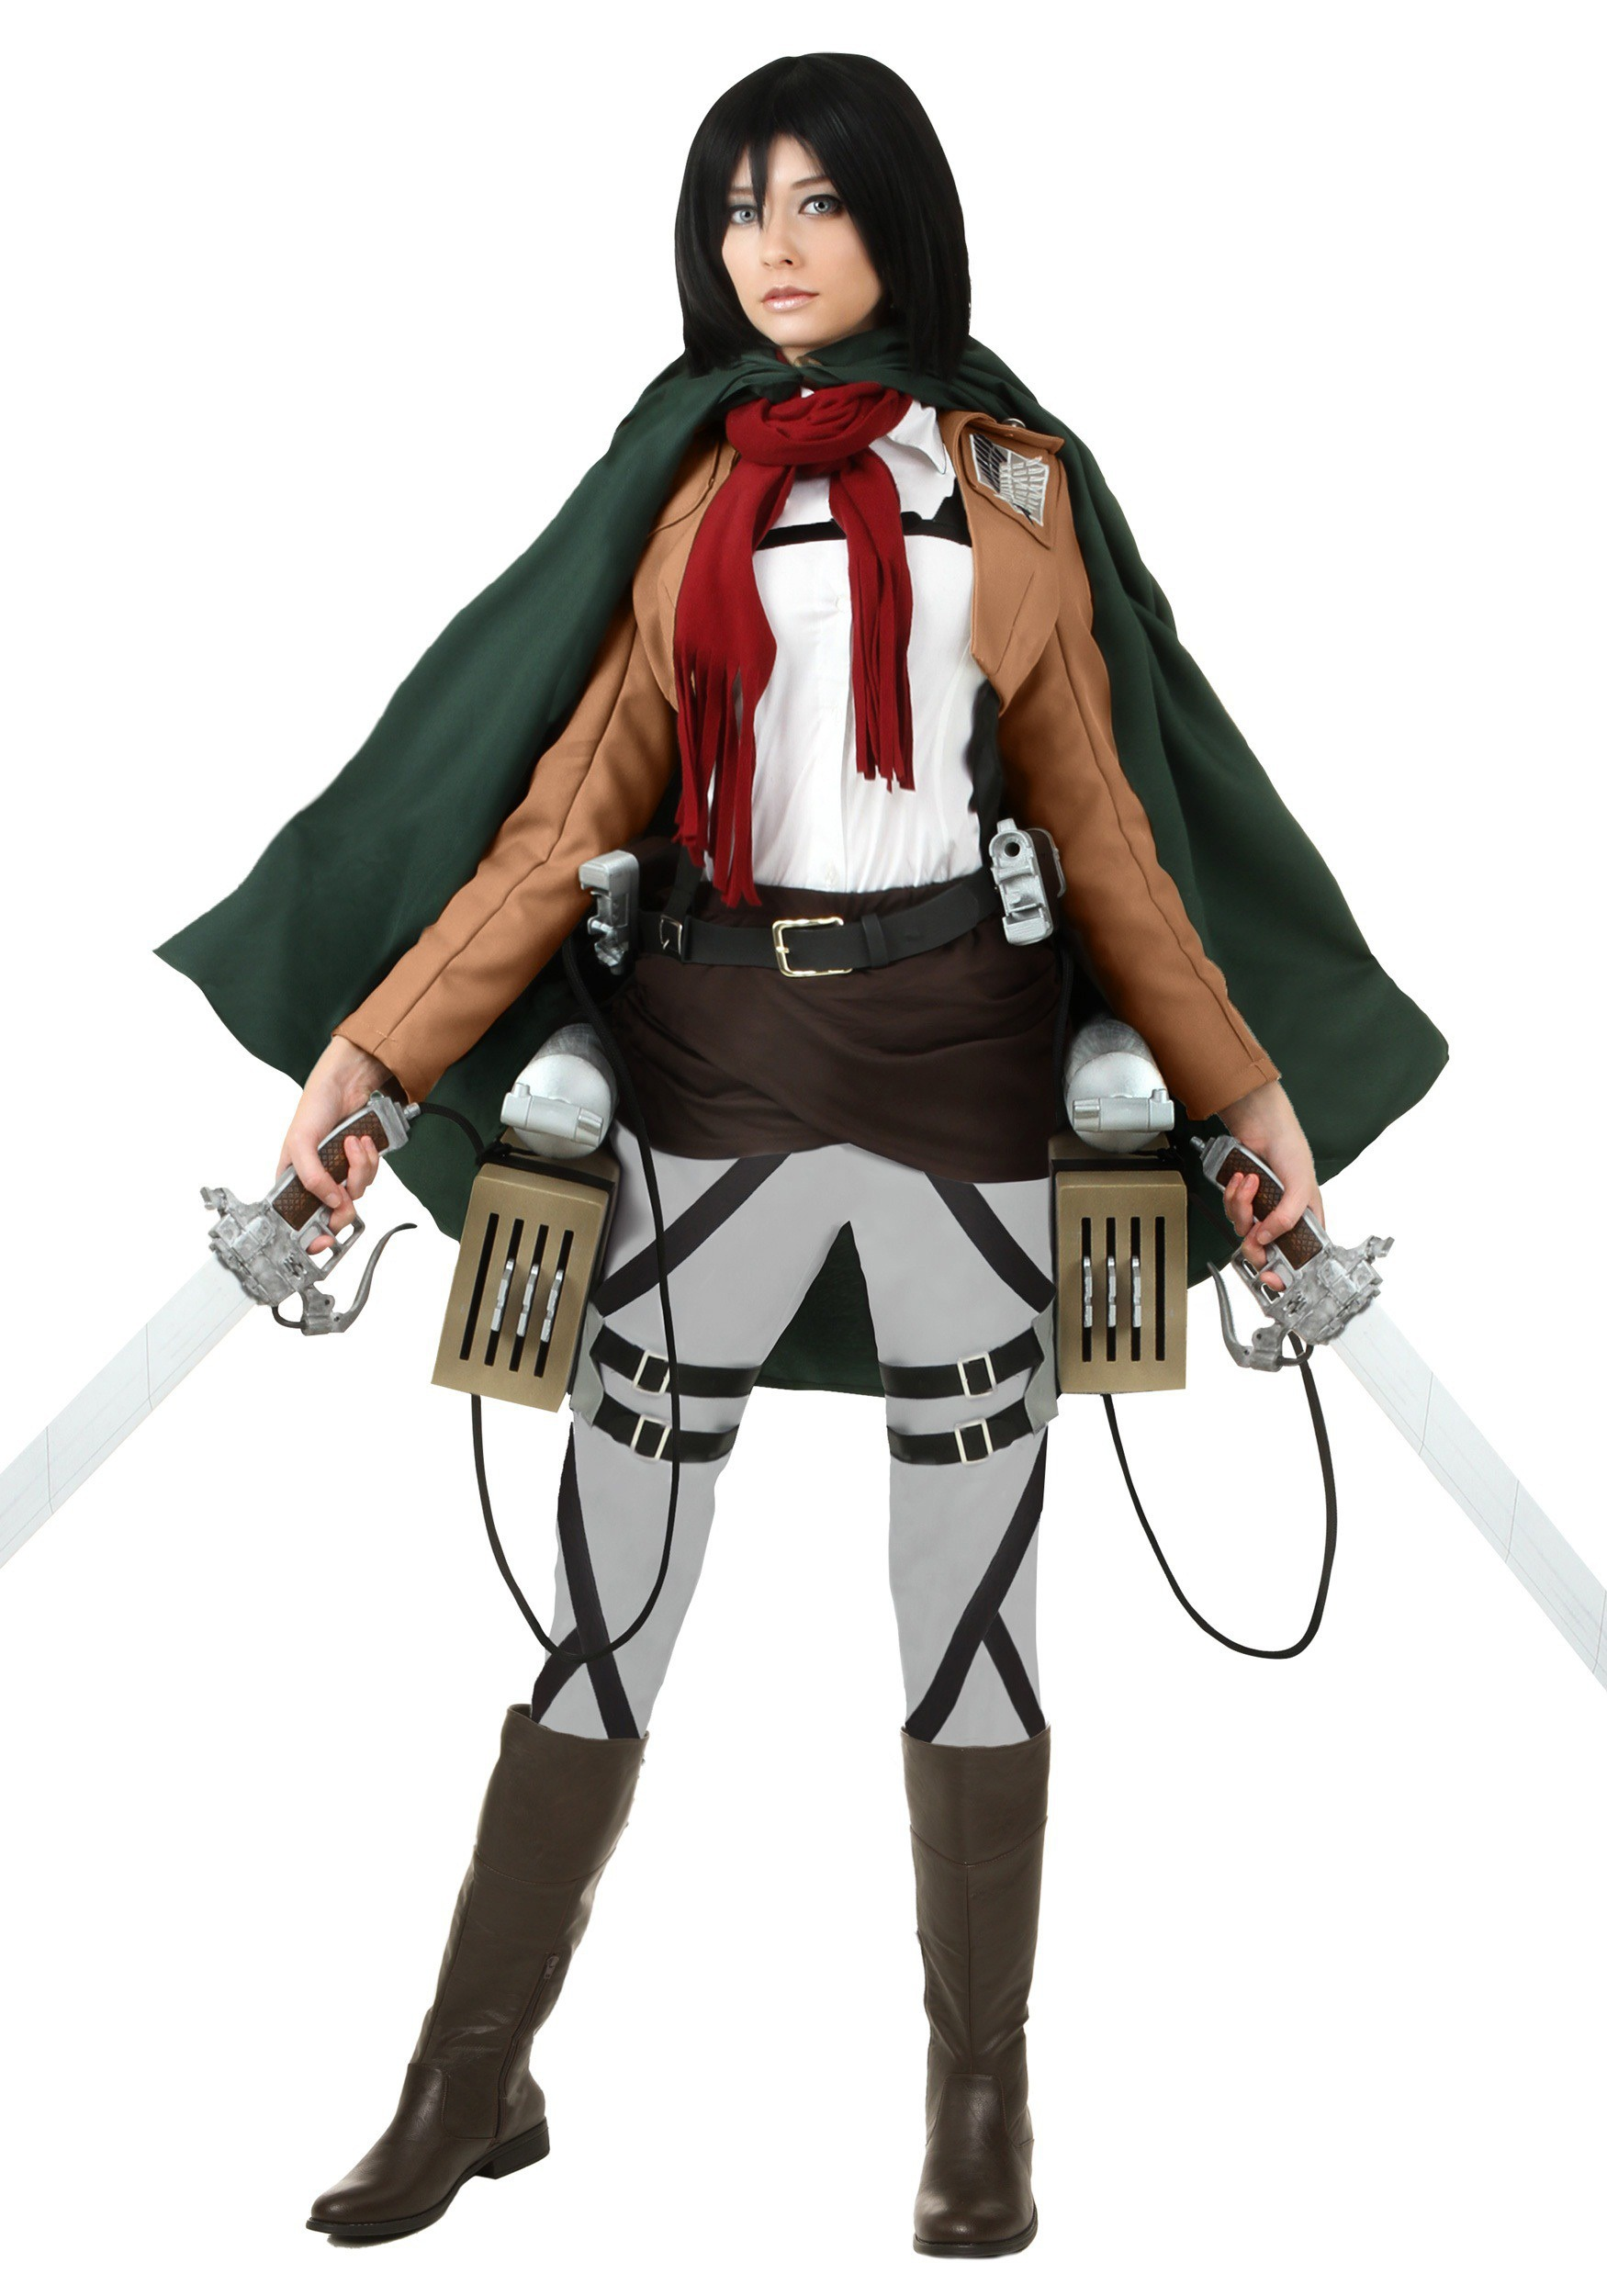 Deluxe Attack on Titan Mikasa Costume FUN2358AD